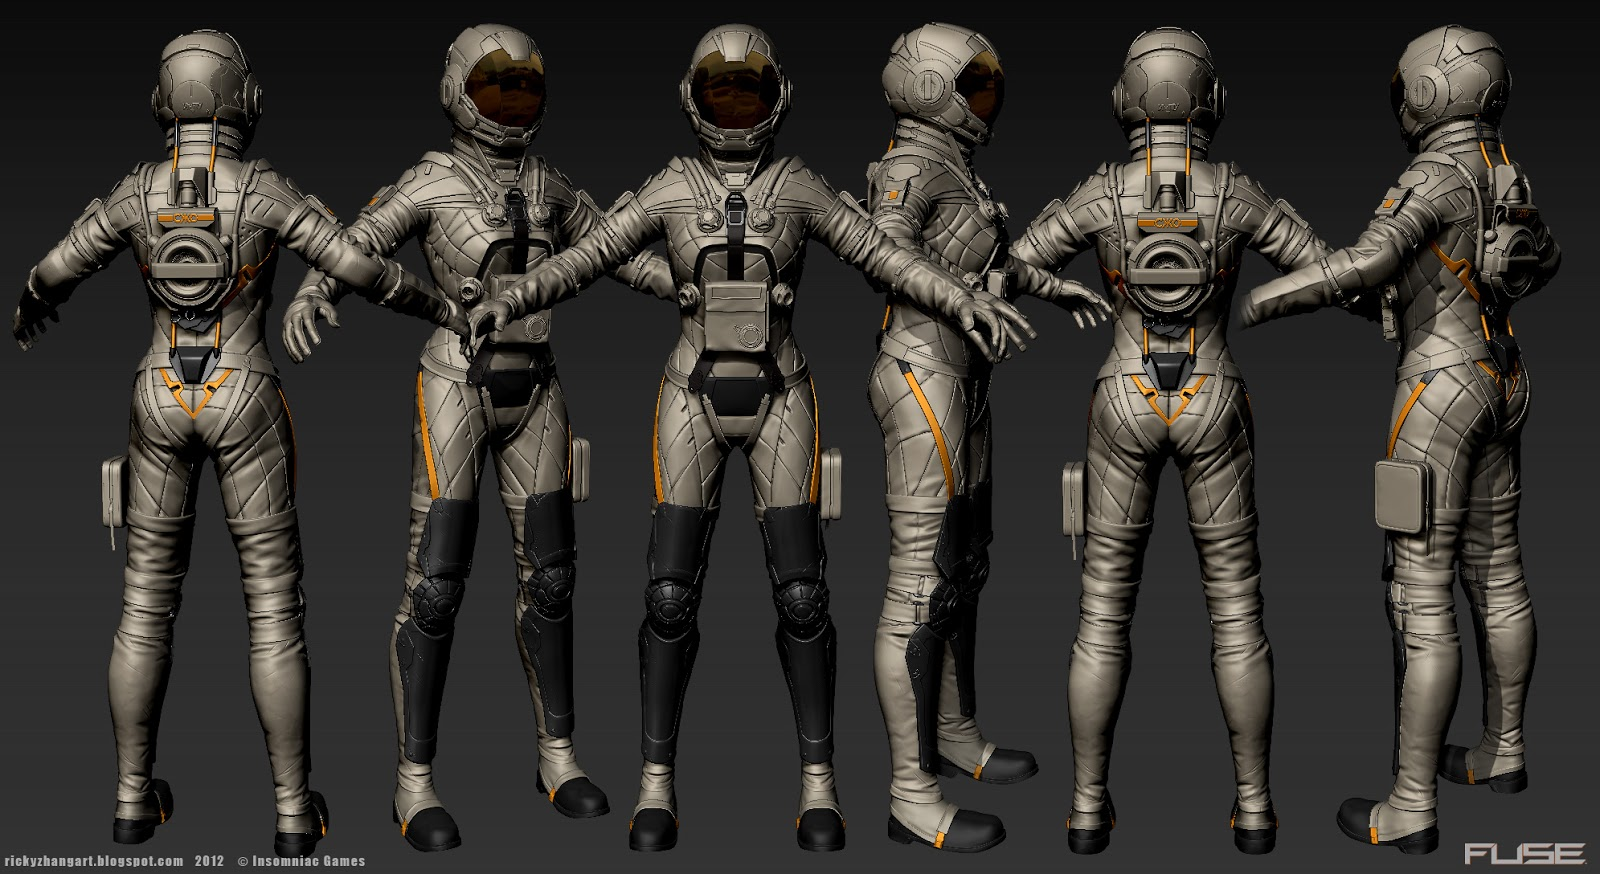 Ricky zhang art may 2013 for Female space suit